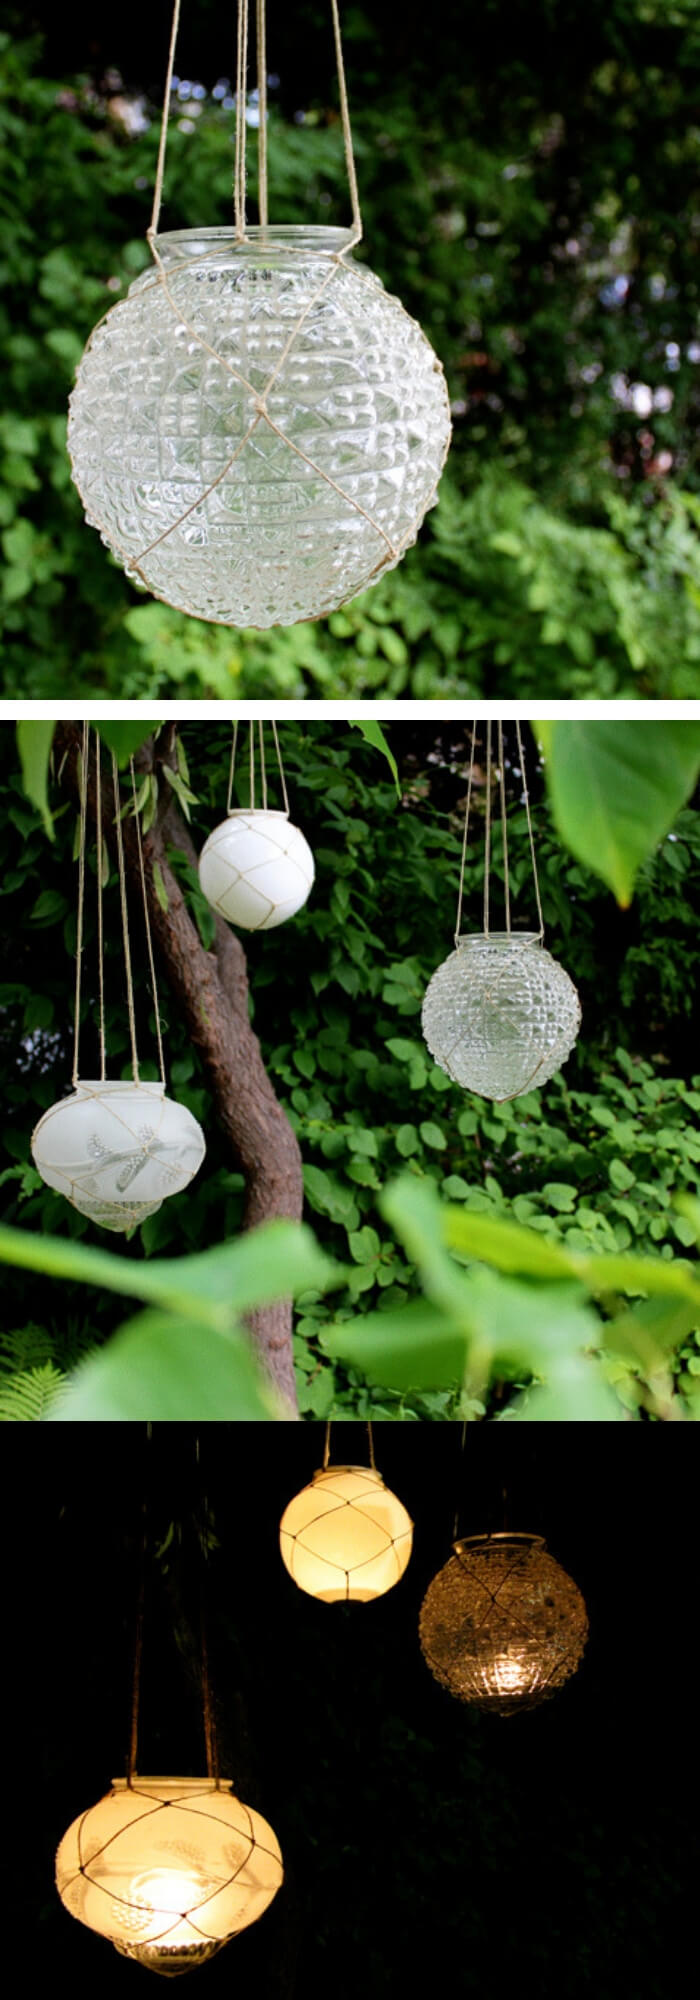 Garden Lighting: upcycled candle lanterns | Best DIY Repurposed Garden Tools Ideas | Garden Craft Ideas